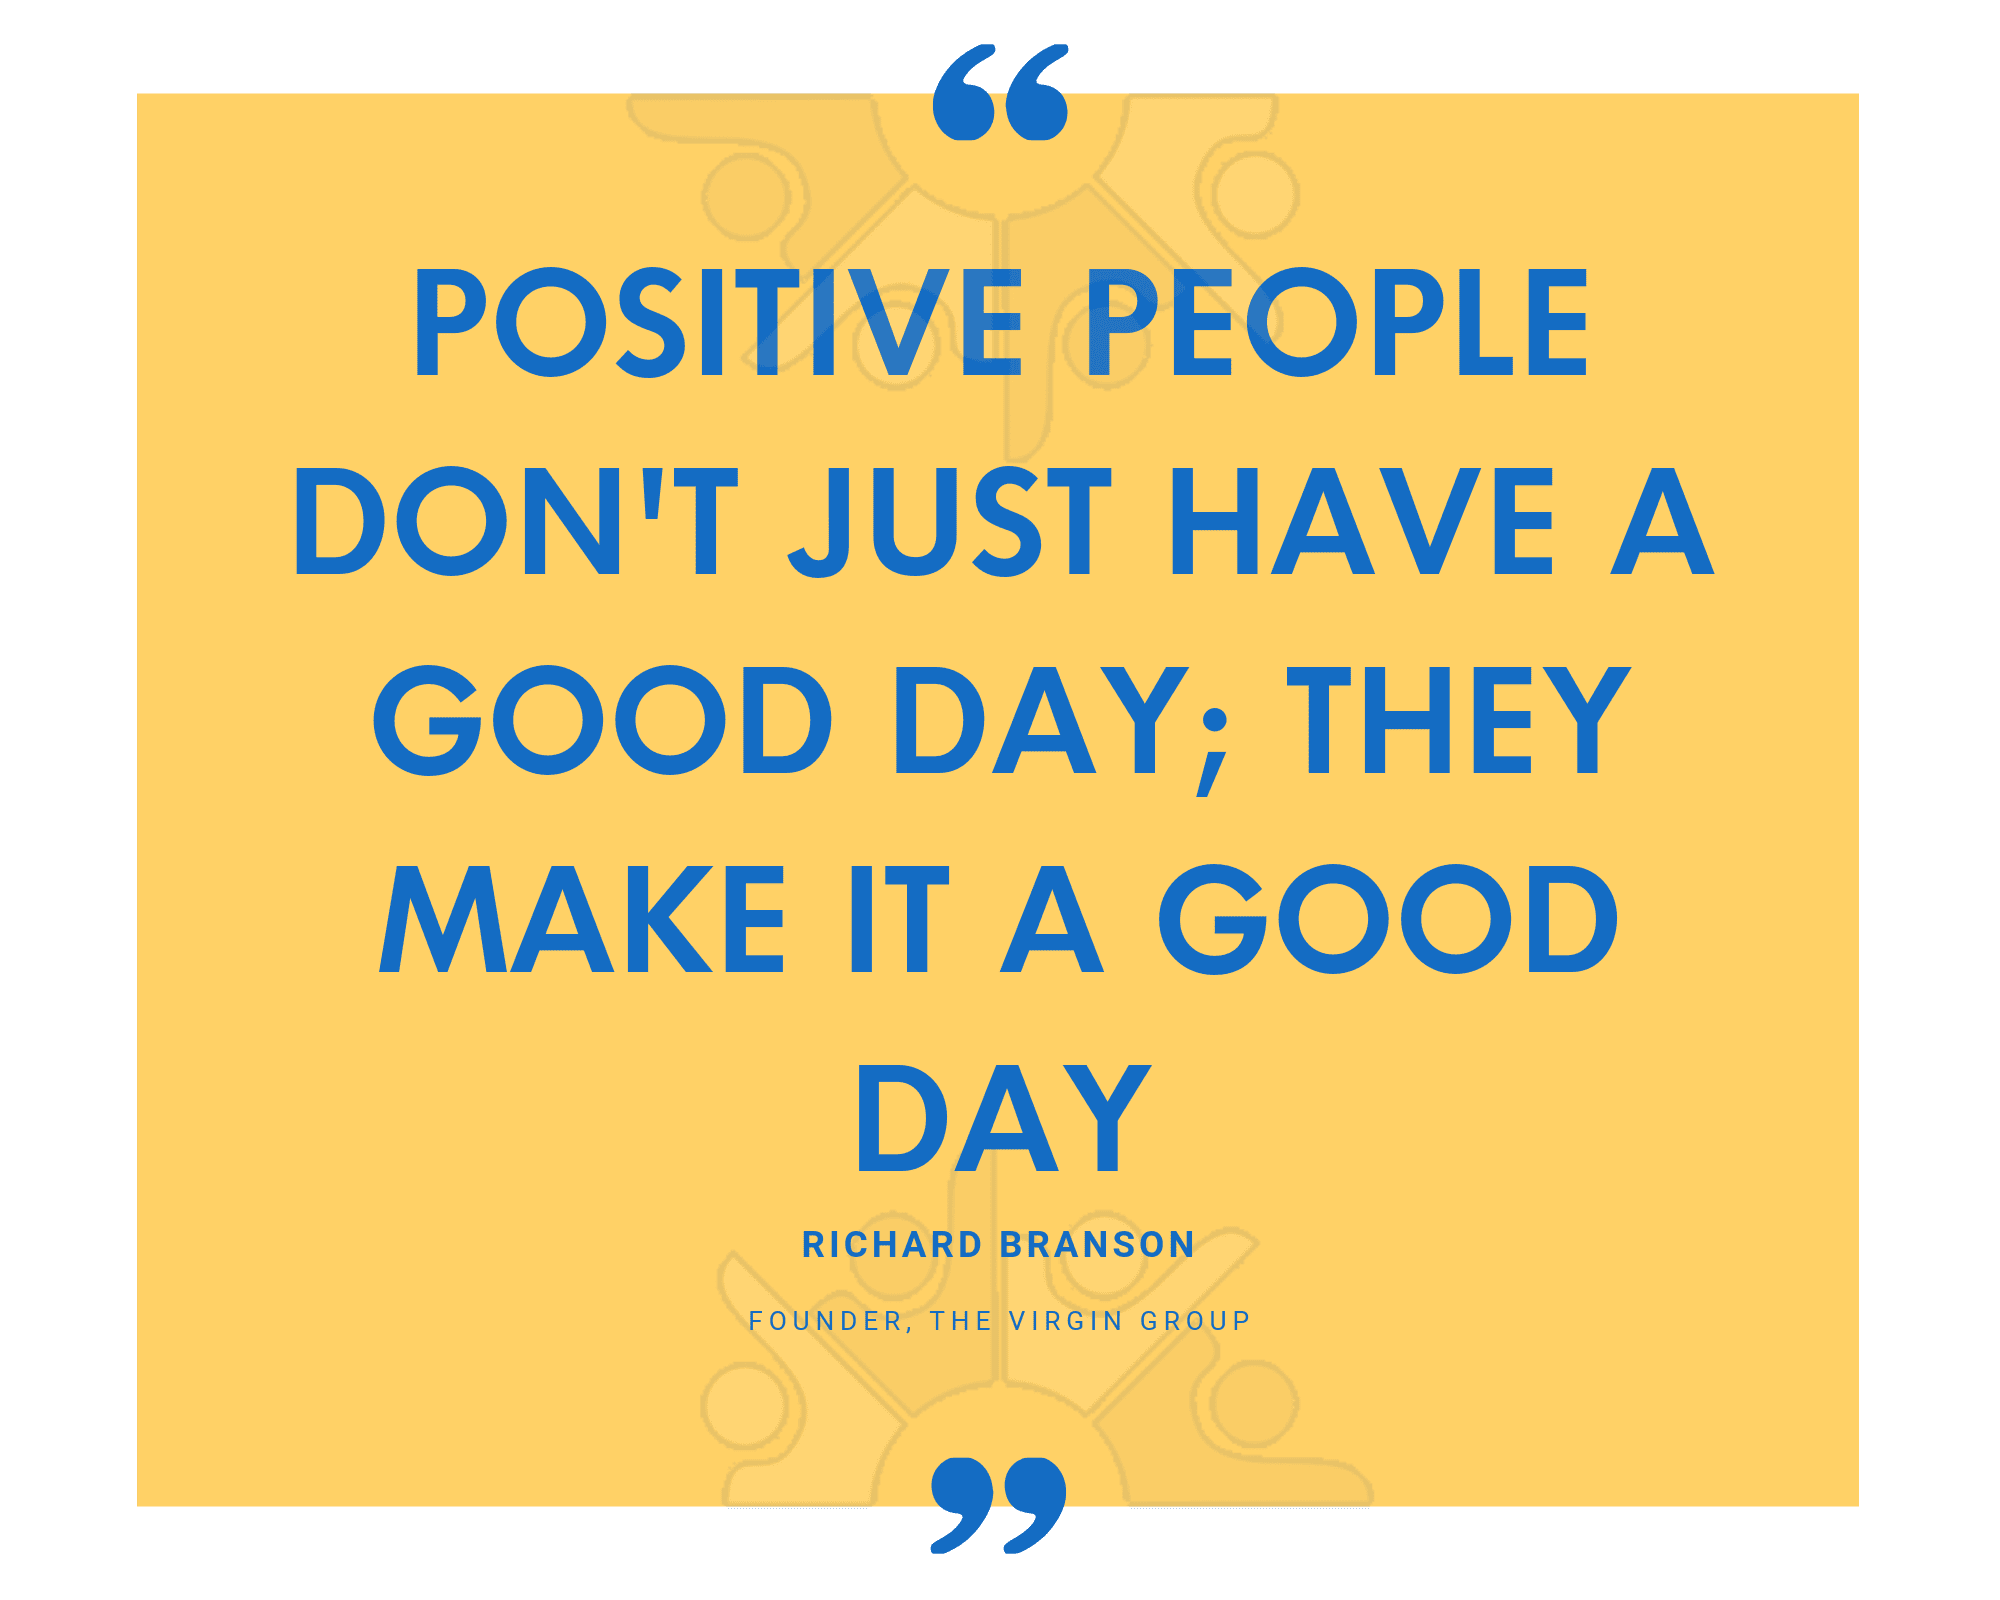 Positive people dont just have a good day; they make it a good day